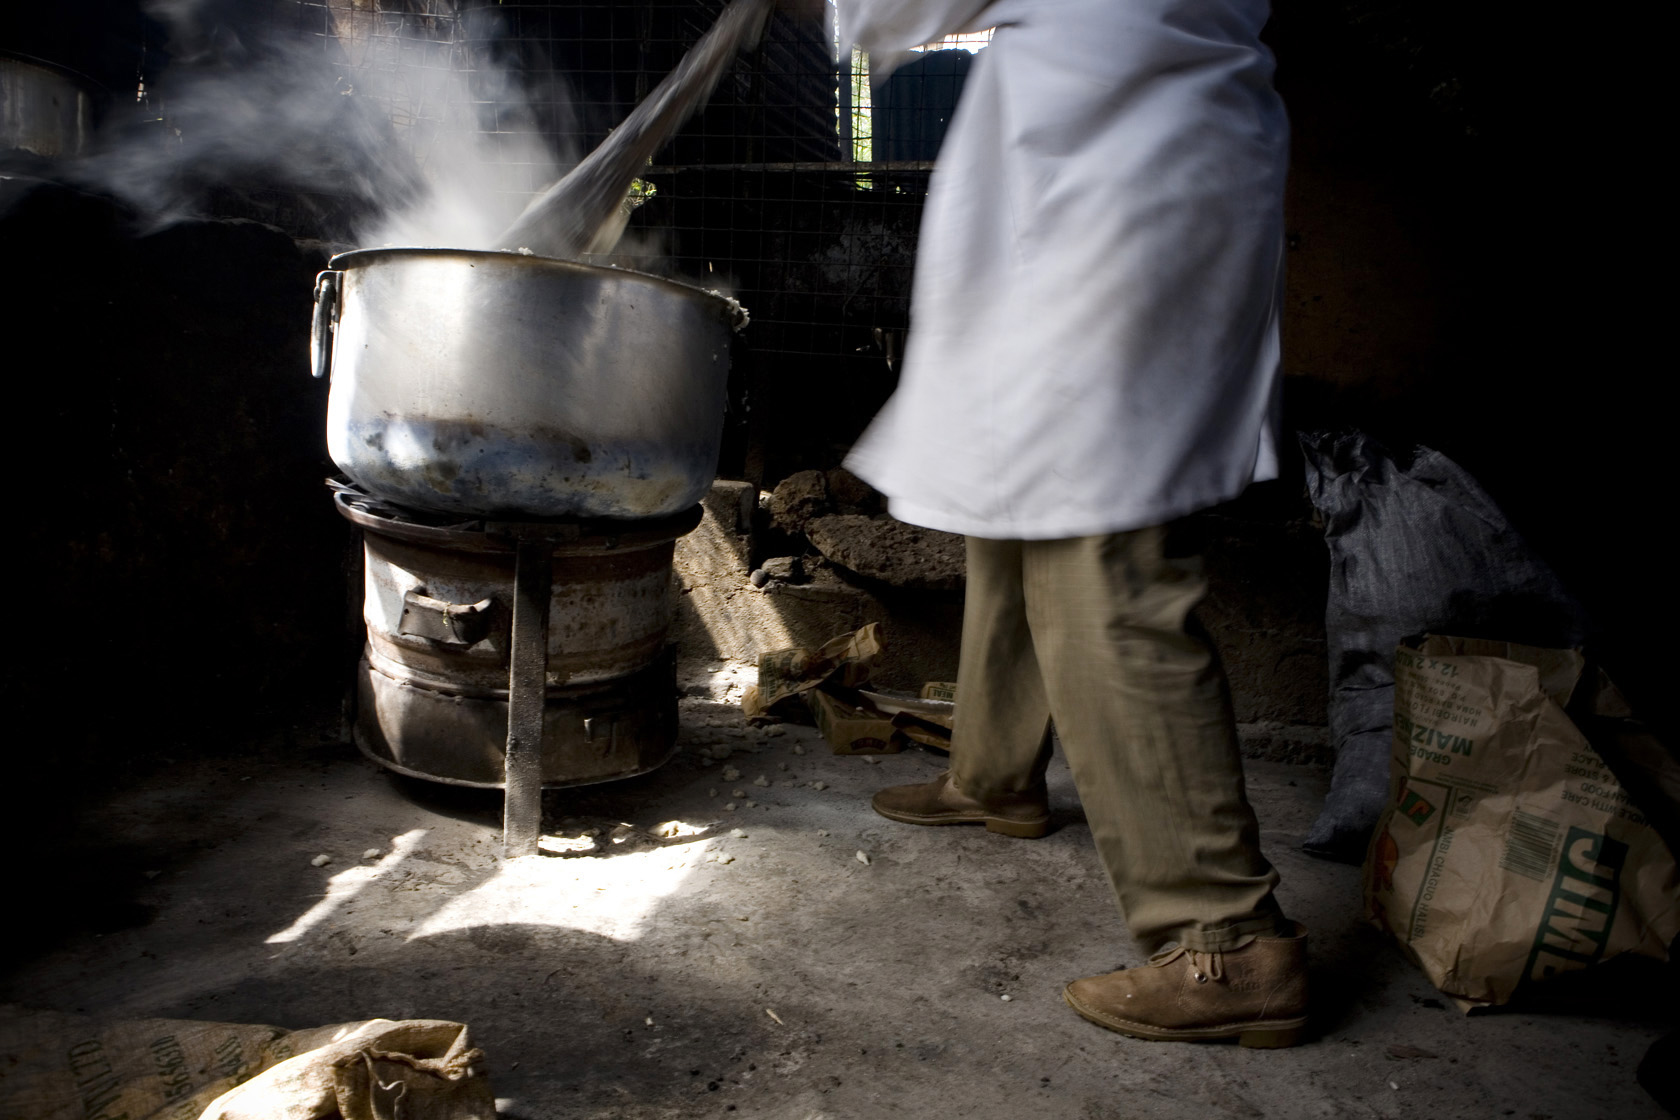 A cook on the job at a restaurant at the Nairobi City Park market, Kenya